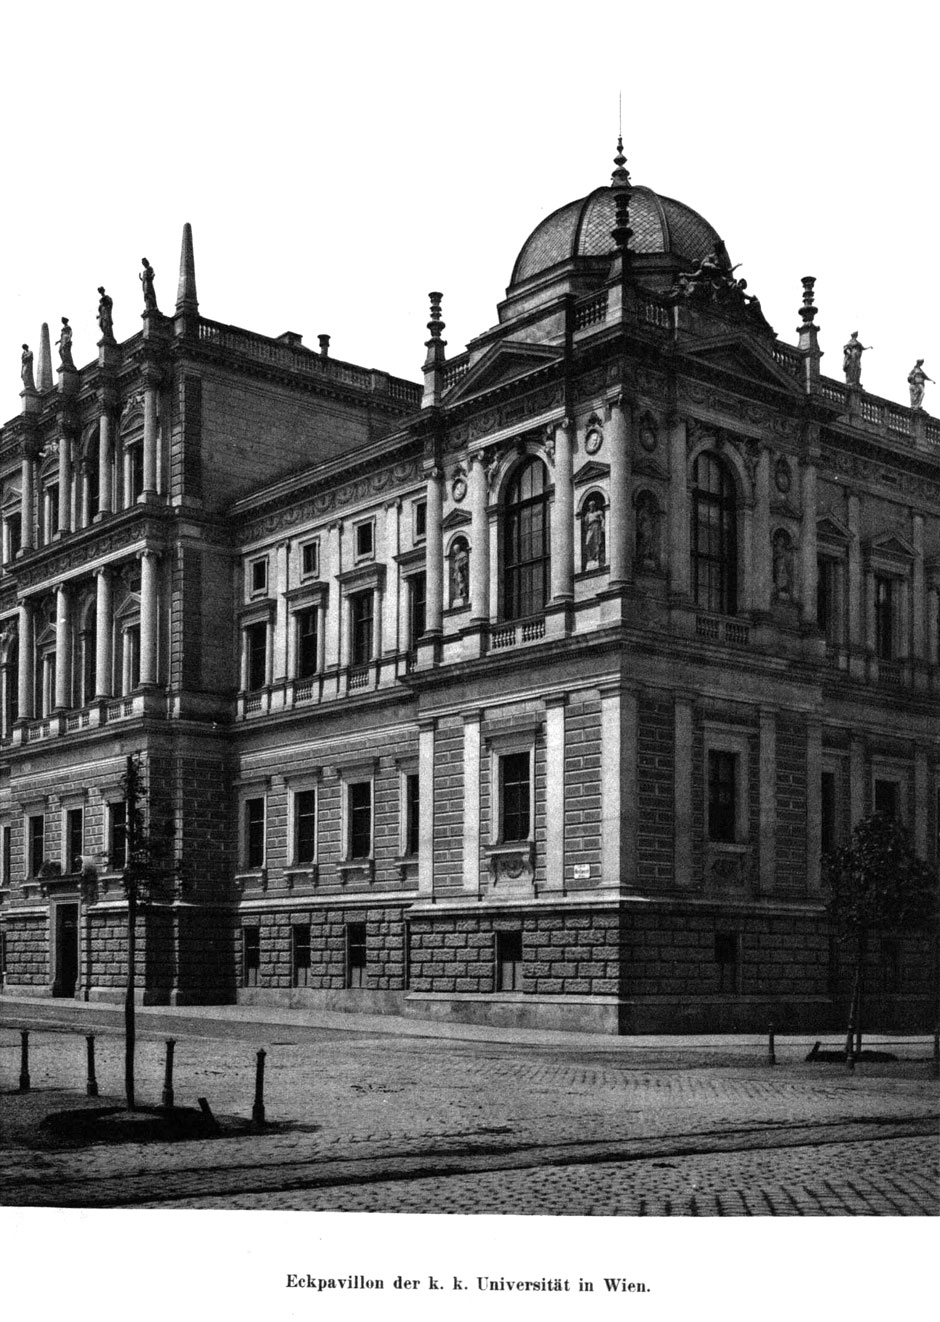 Archivbild: Wiener Universität, Eckpavillon